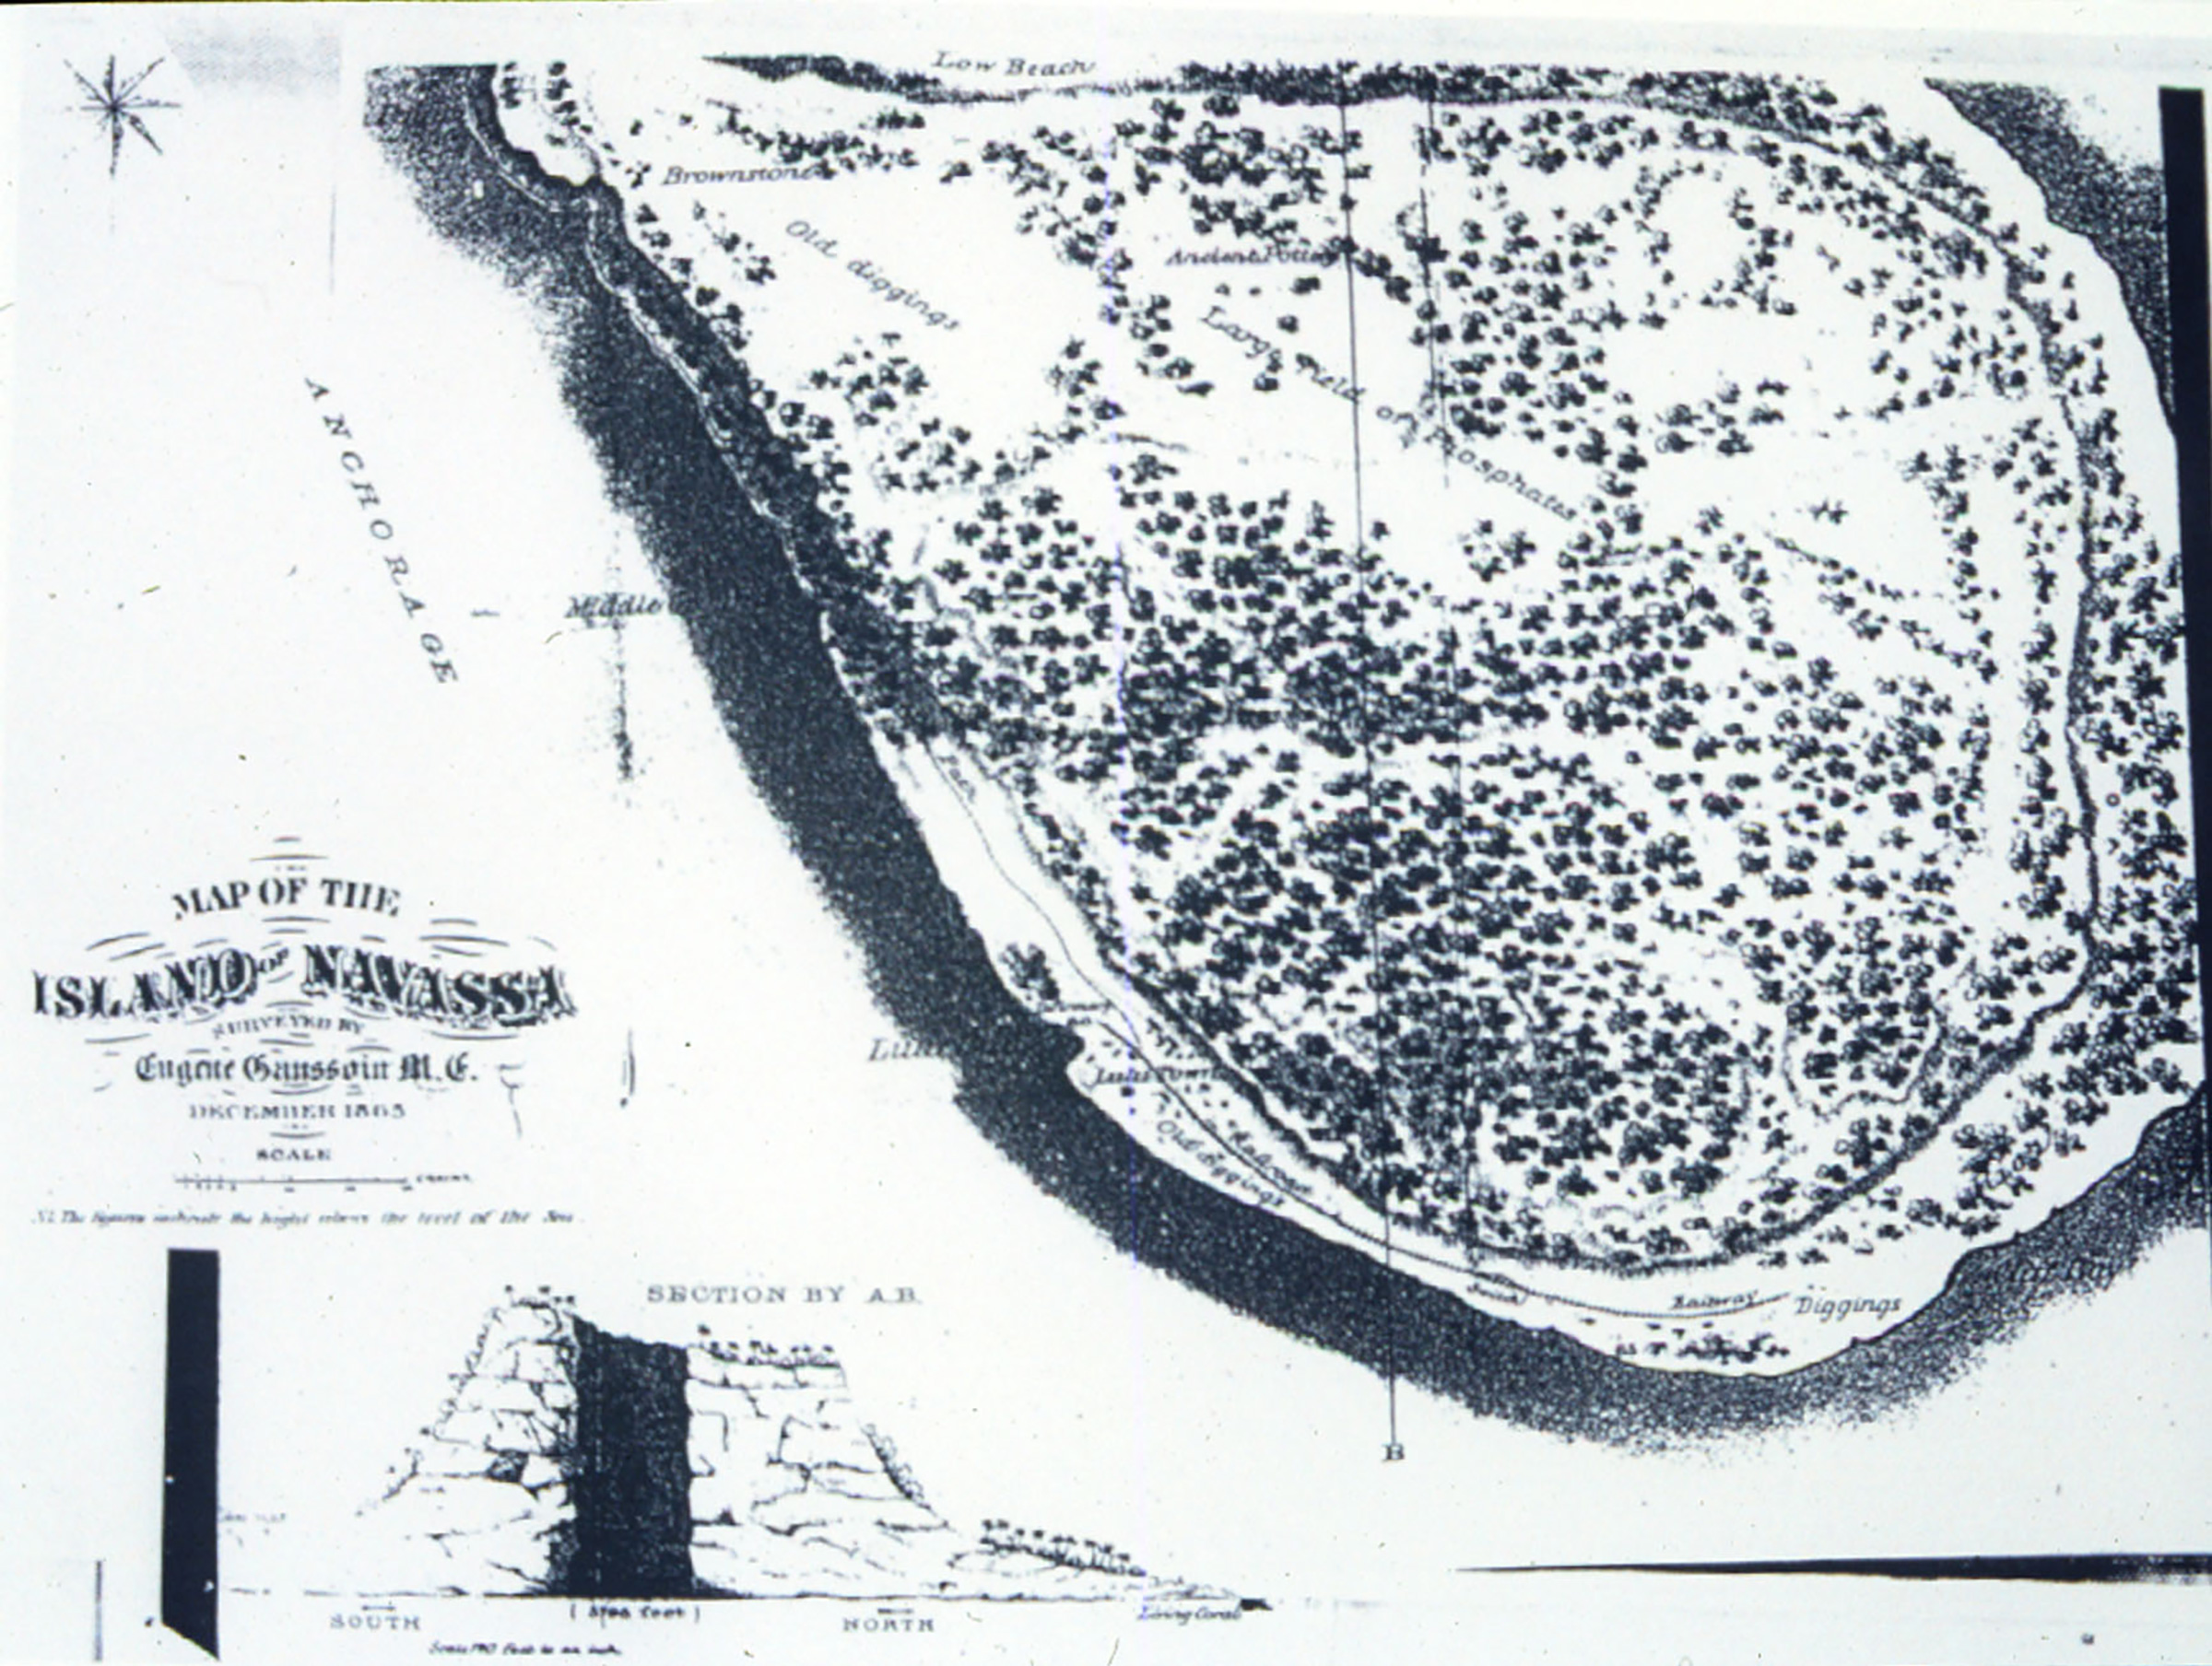 Historic map of the island of Navassa